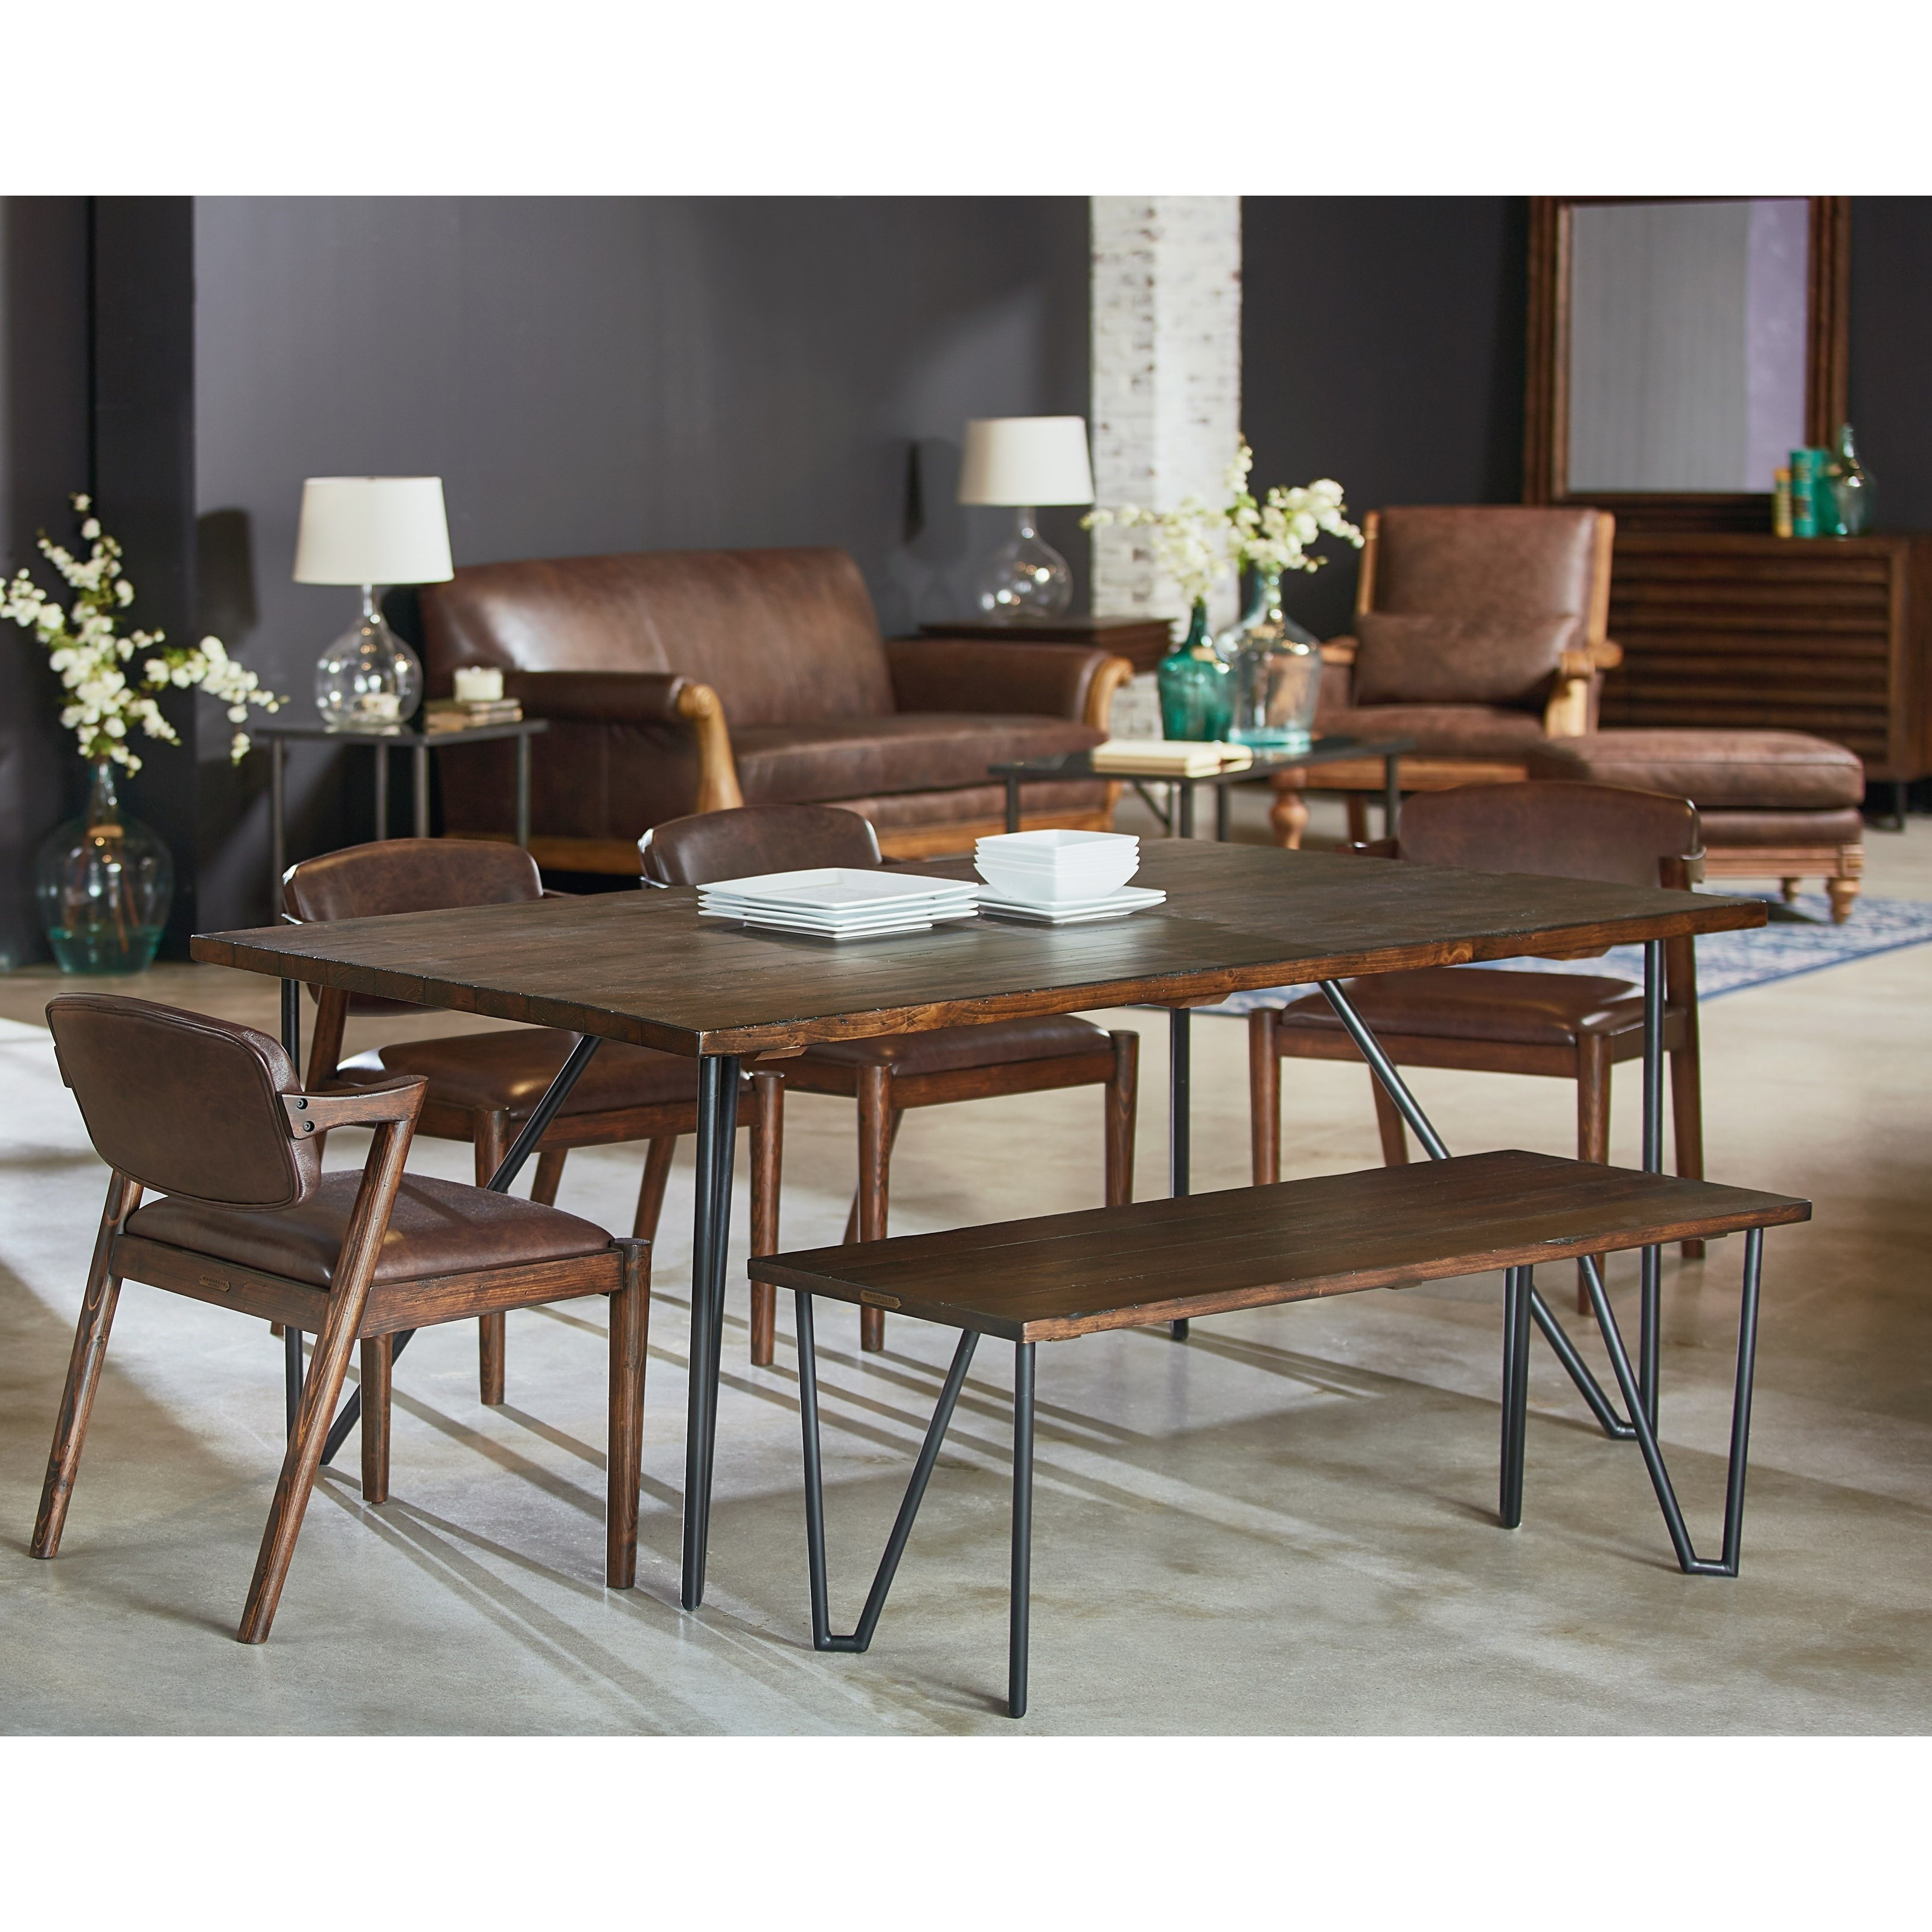 Magnolia Home Entwine Rattan Arm Chairs Within Widely Used 6 Piece Table And Chair Set With Bench And Metal Hairpin Legs (View 13 of 20)